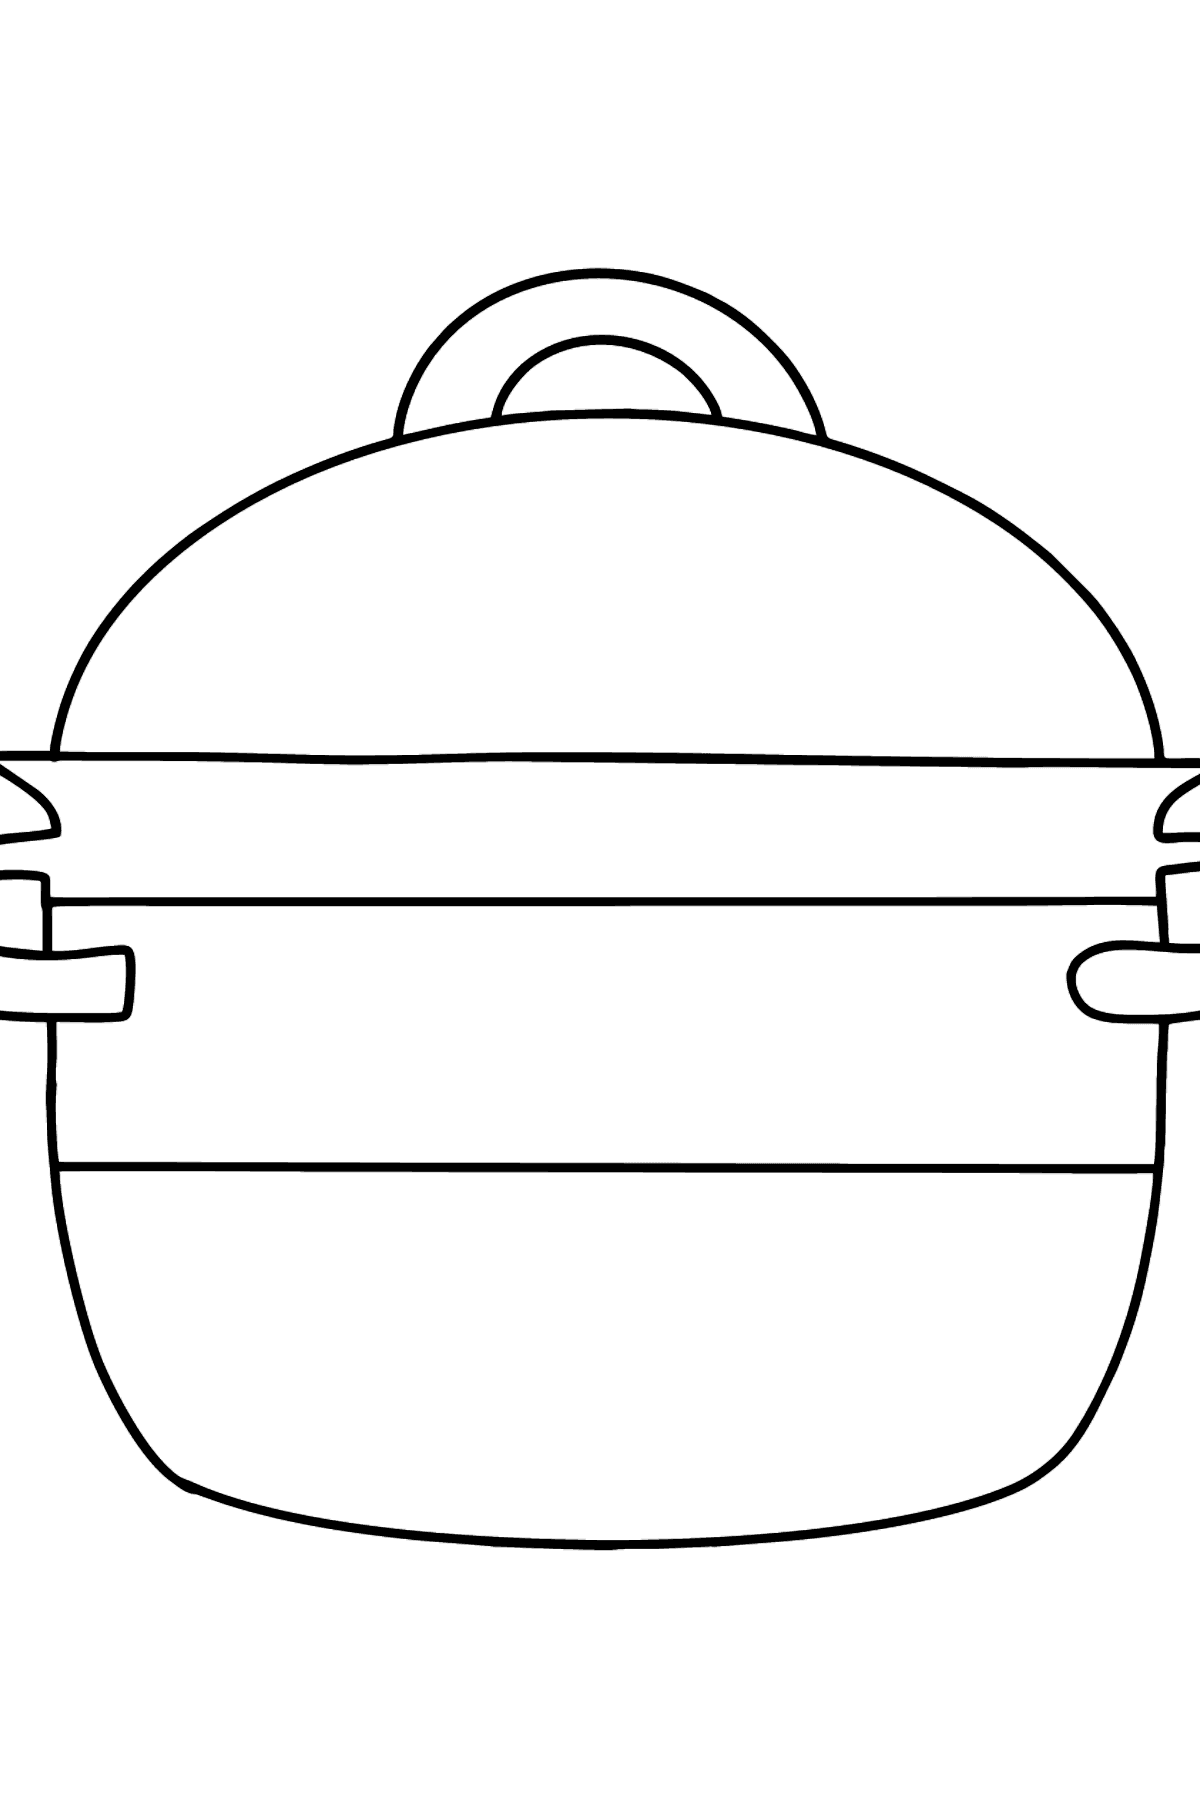 Saucepan coloring page - Coloring Pages for Kids